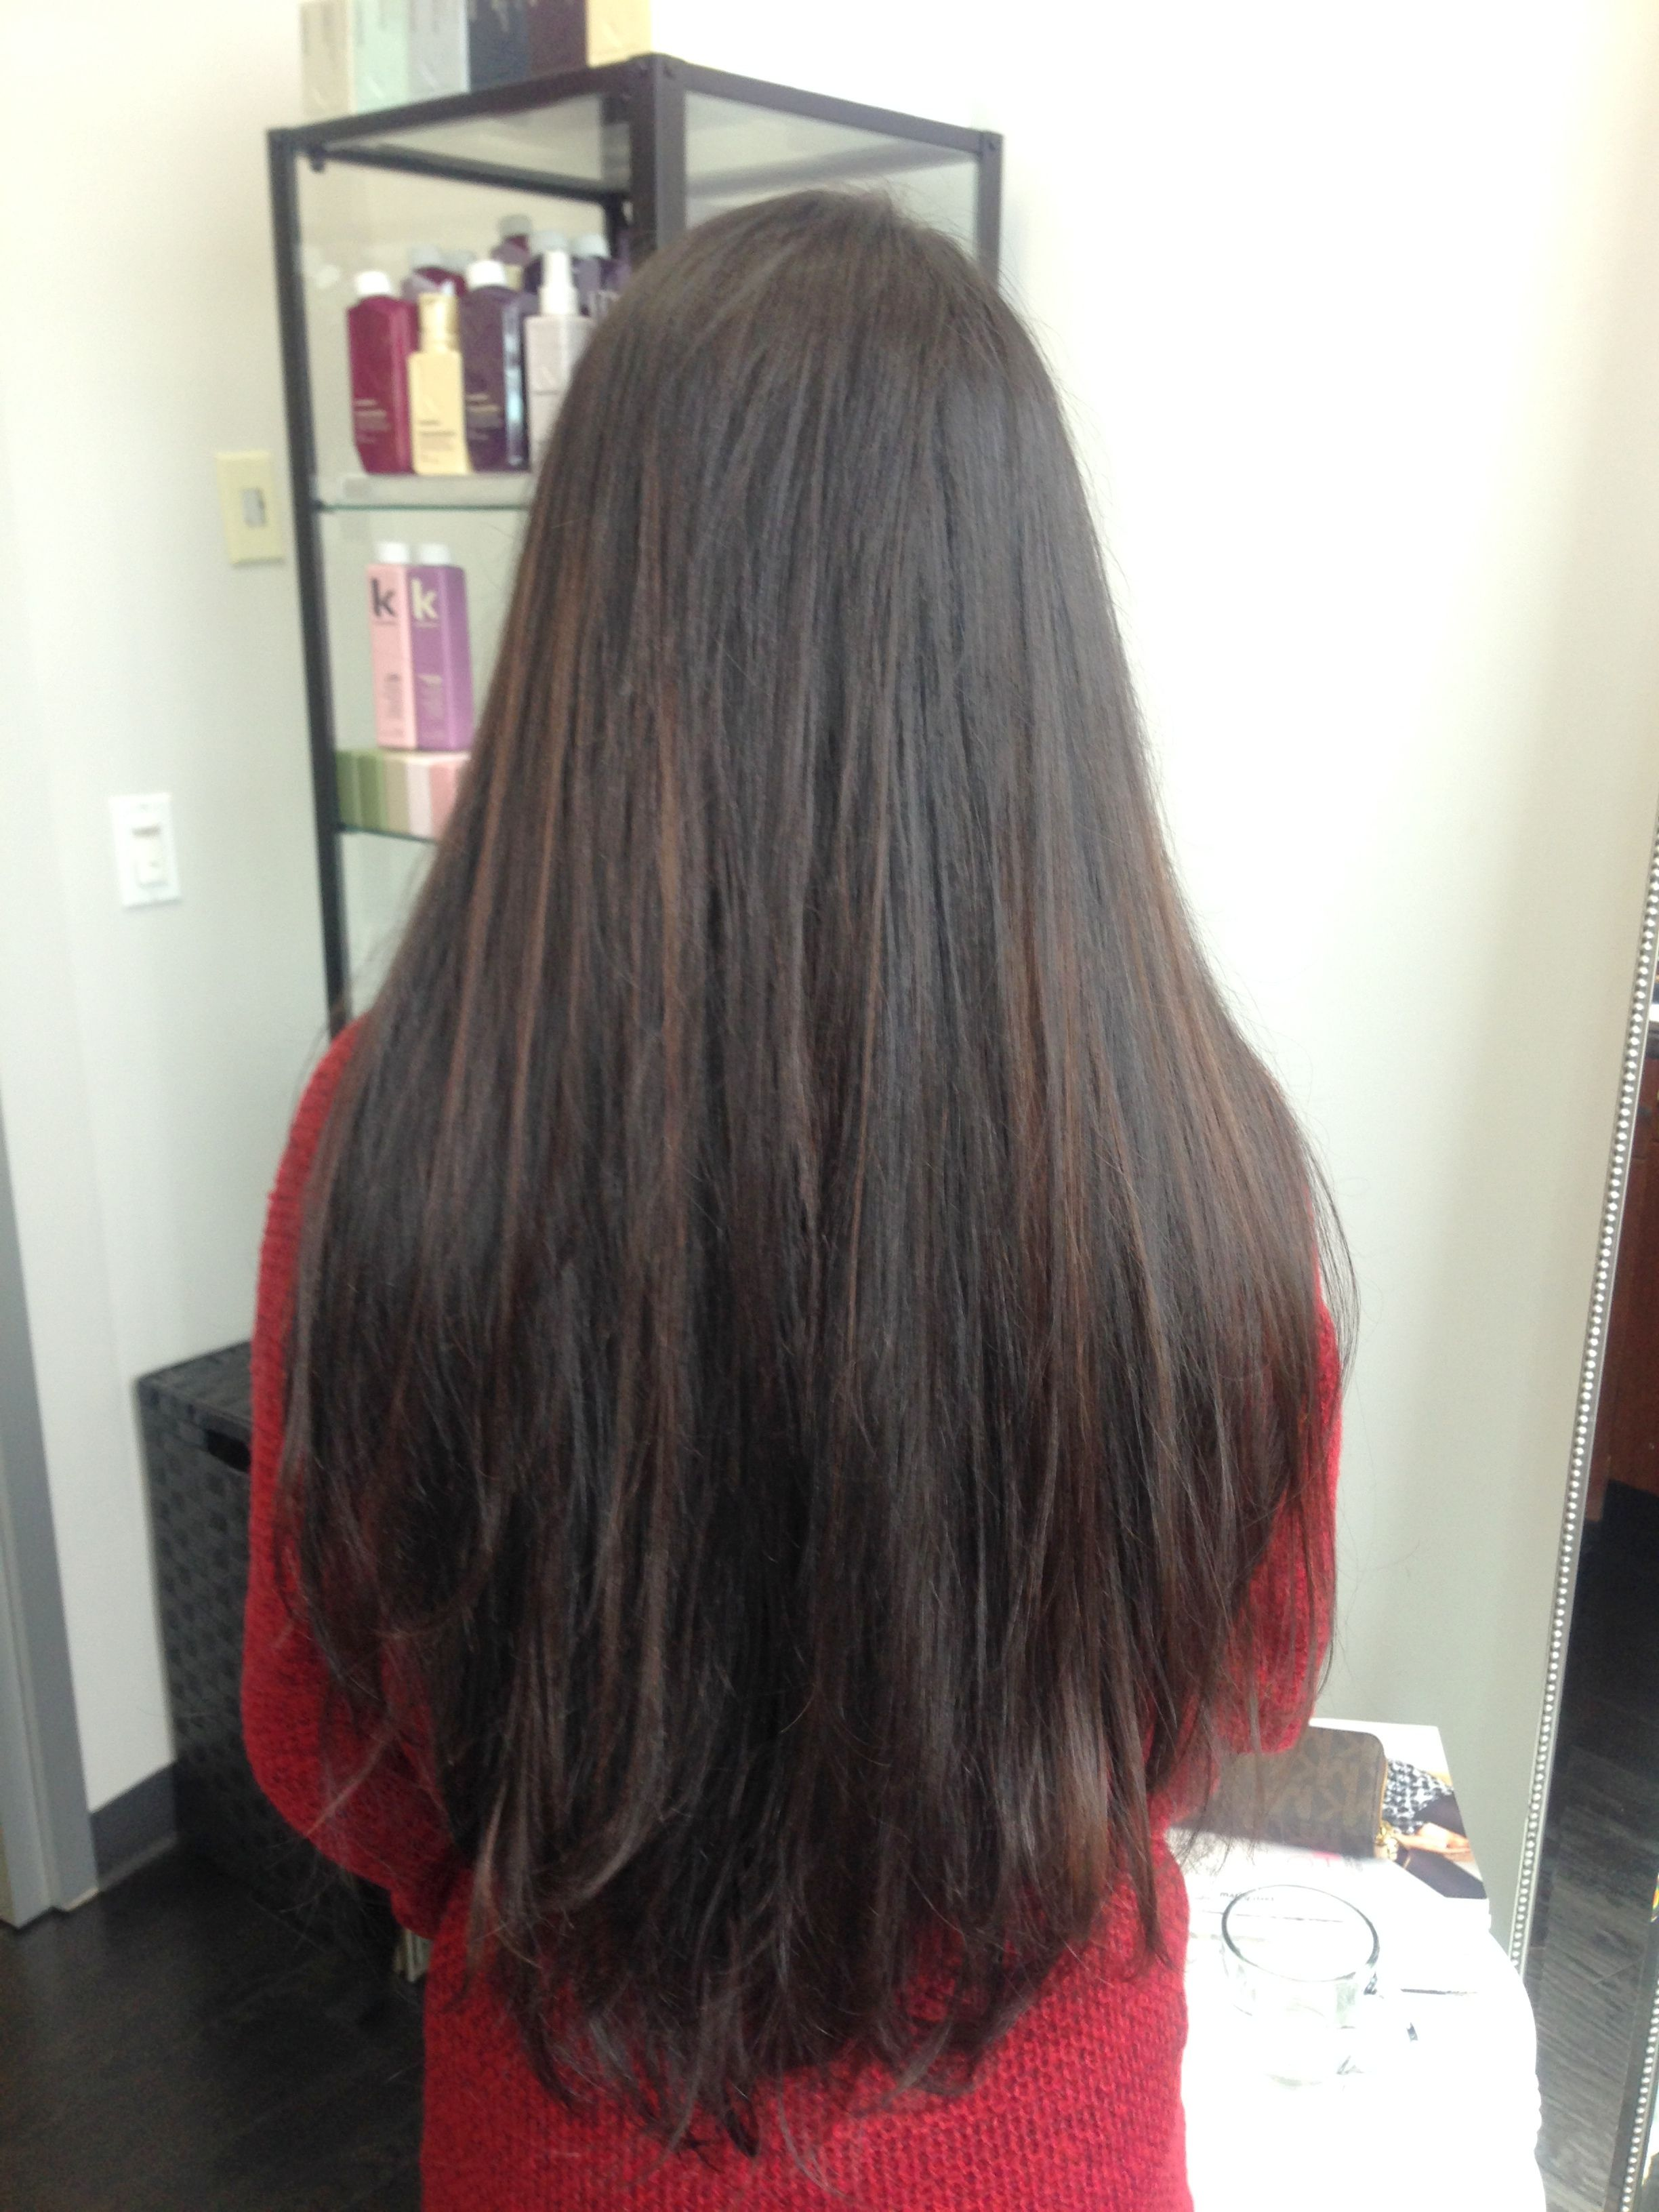 Sunkissed Partial Balayage Effect With Hints On Red And Golden On Straight Indian Hair Indian Hairstyles Indian Hair Color Long Layered Hair